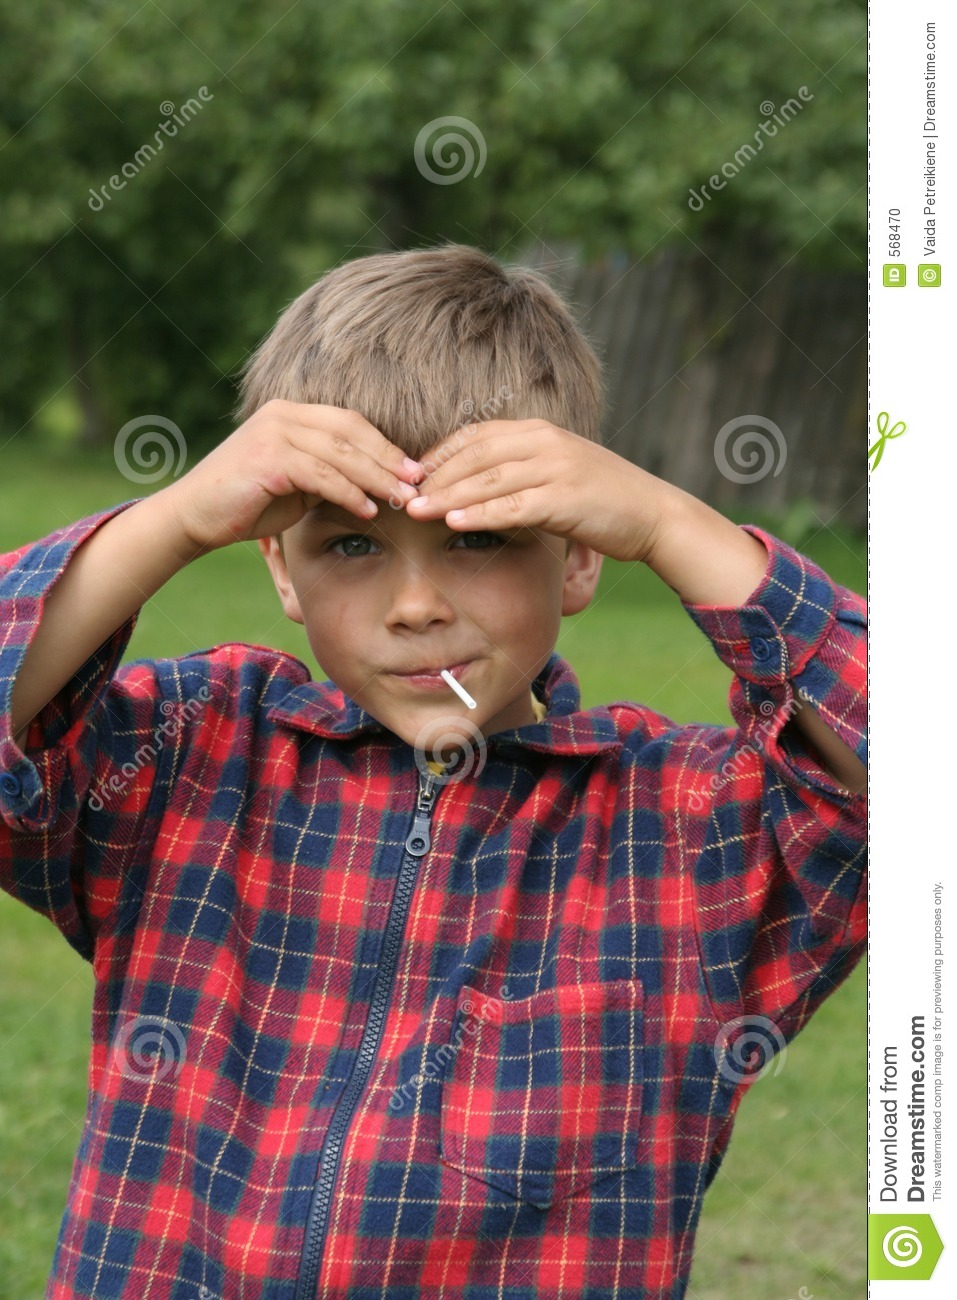 Portrait Of Beautiful Young Child Stock Photo - Image of